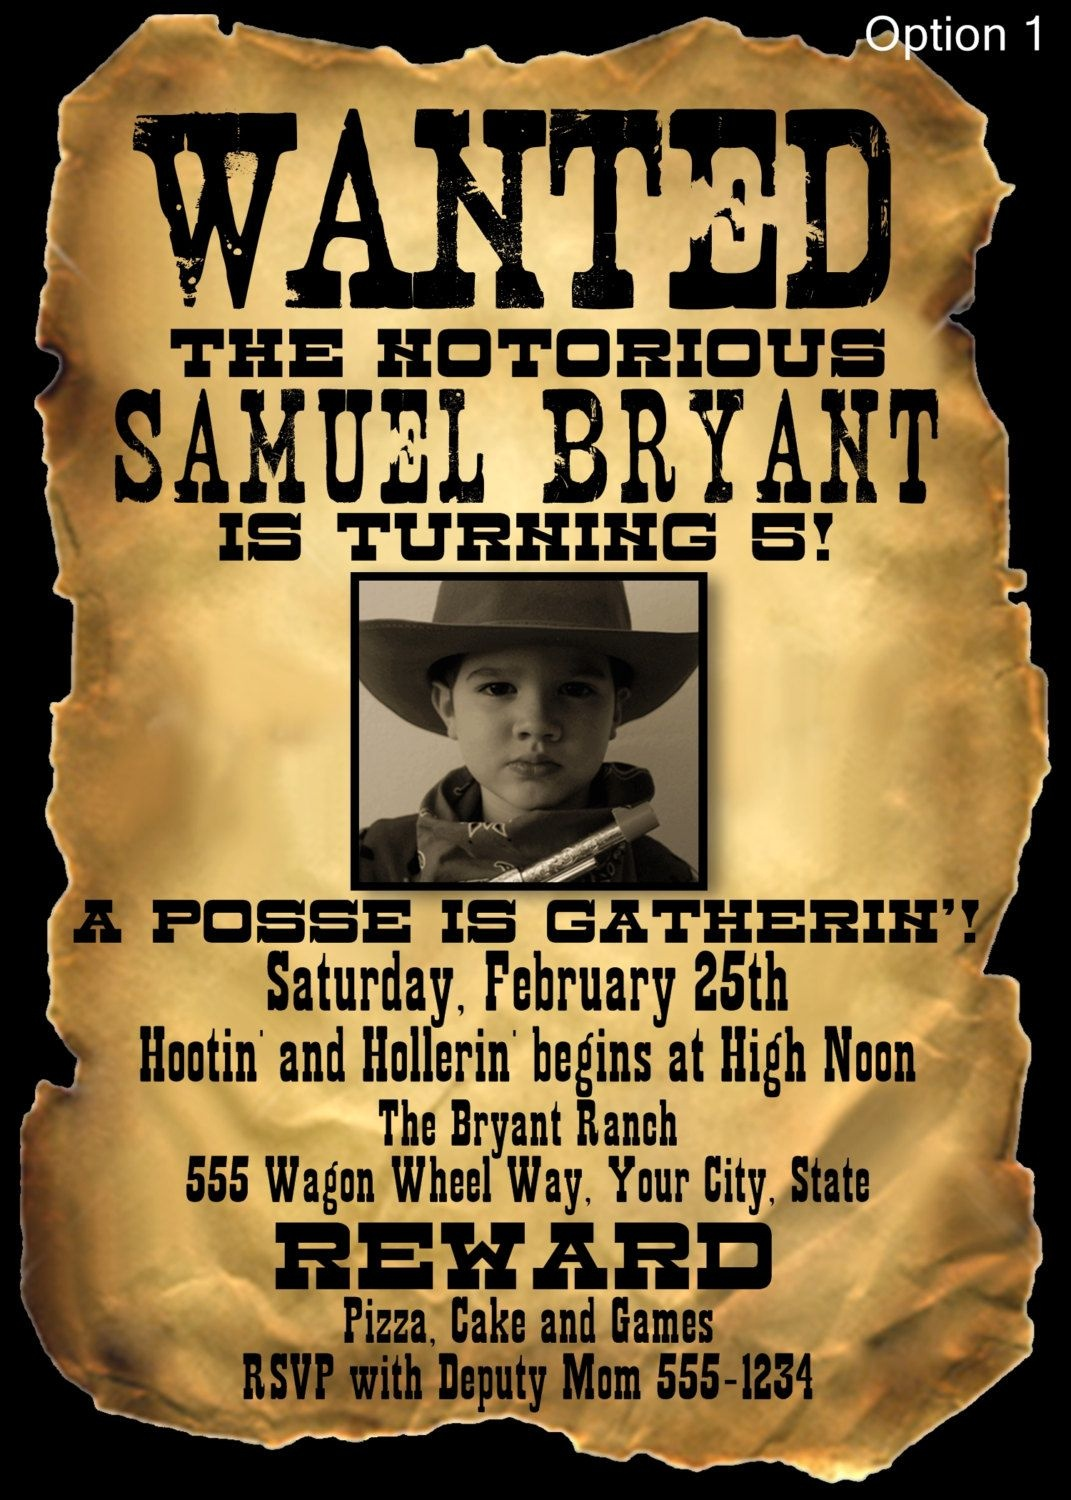 Wanted Poster | Wanted | Salón De Eventos, Salones, Eventos - Free Printable Wanted Poster Invitations